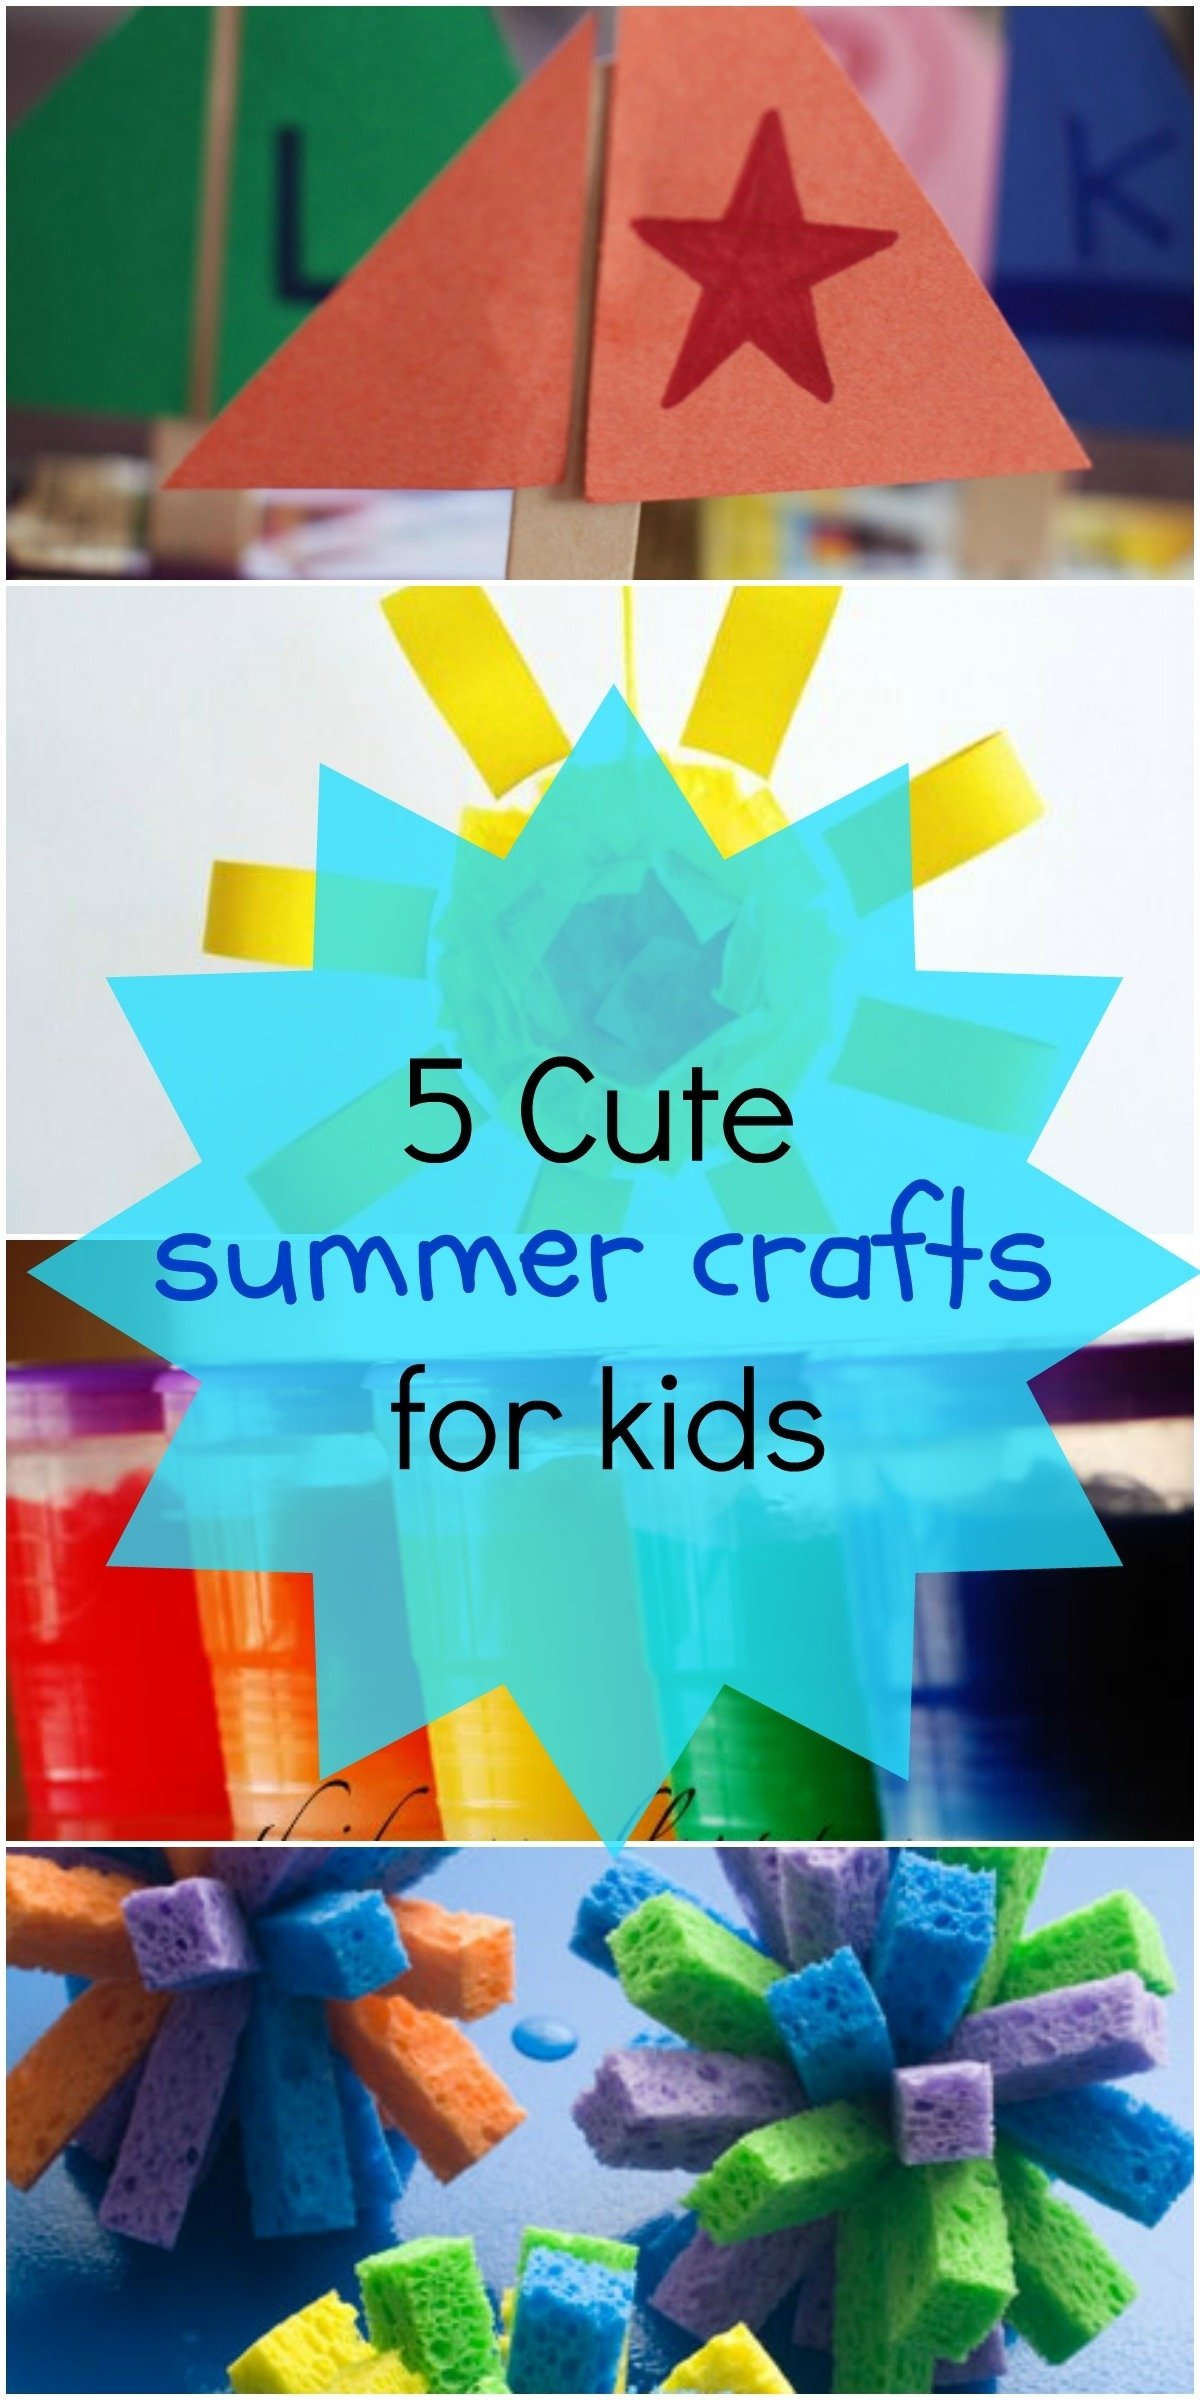 10 Lovable Arts And Crafts Ideas For Summer 5 fun summer crafts for kids love these art project ideas 2 2020